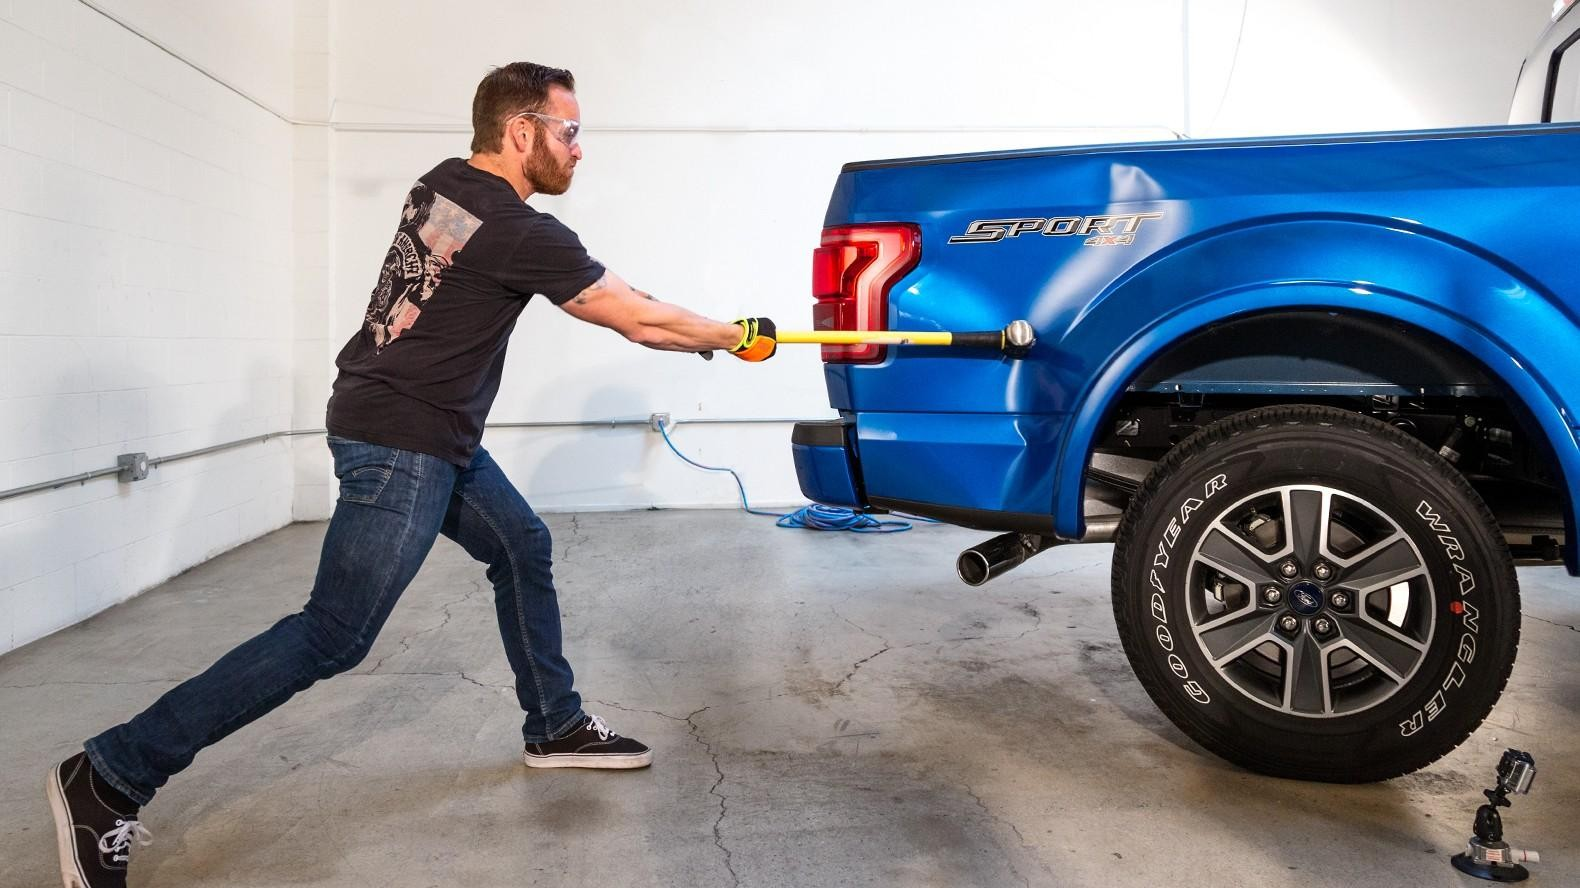 What s Crazier Than Smashing An Aluminum Ford F 150 With A Sledgehammer The Repair Bill